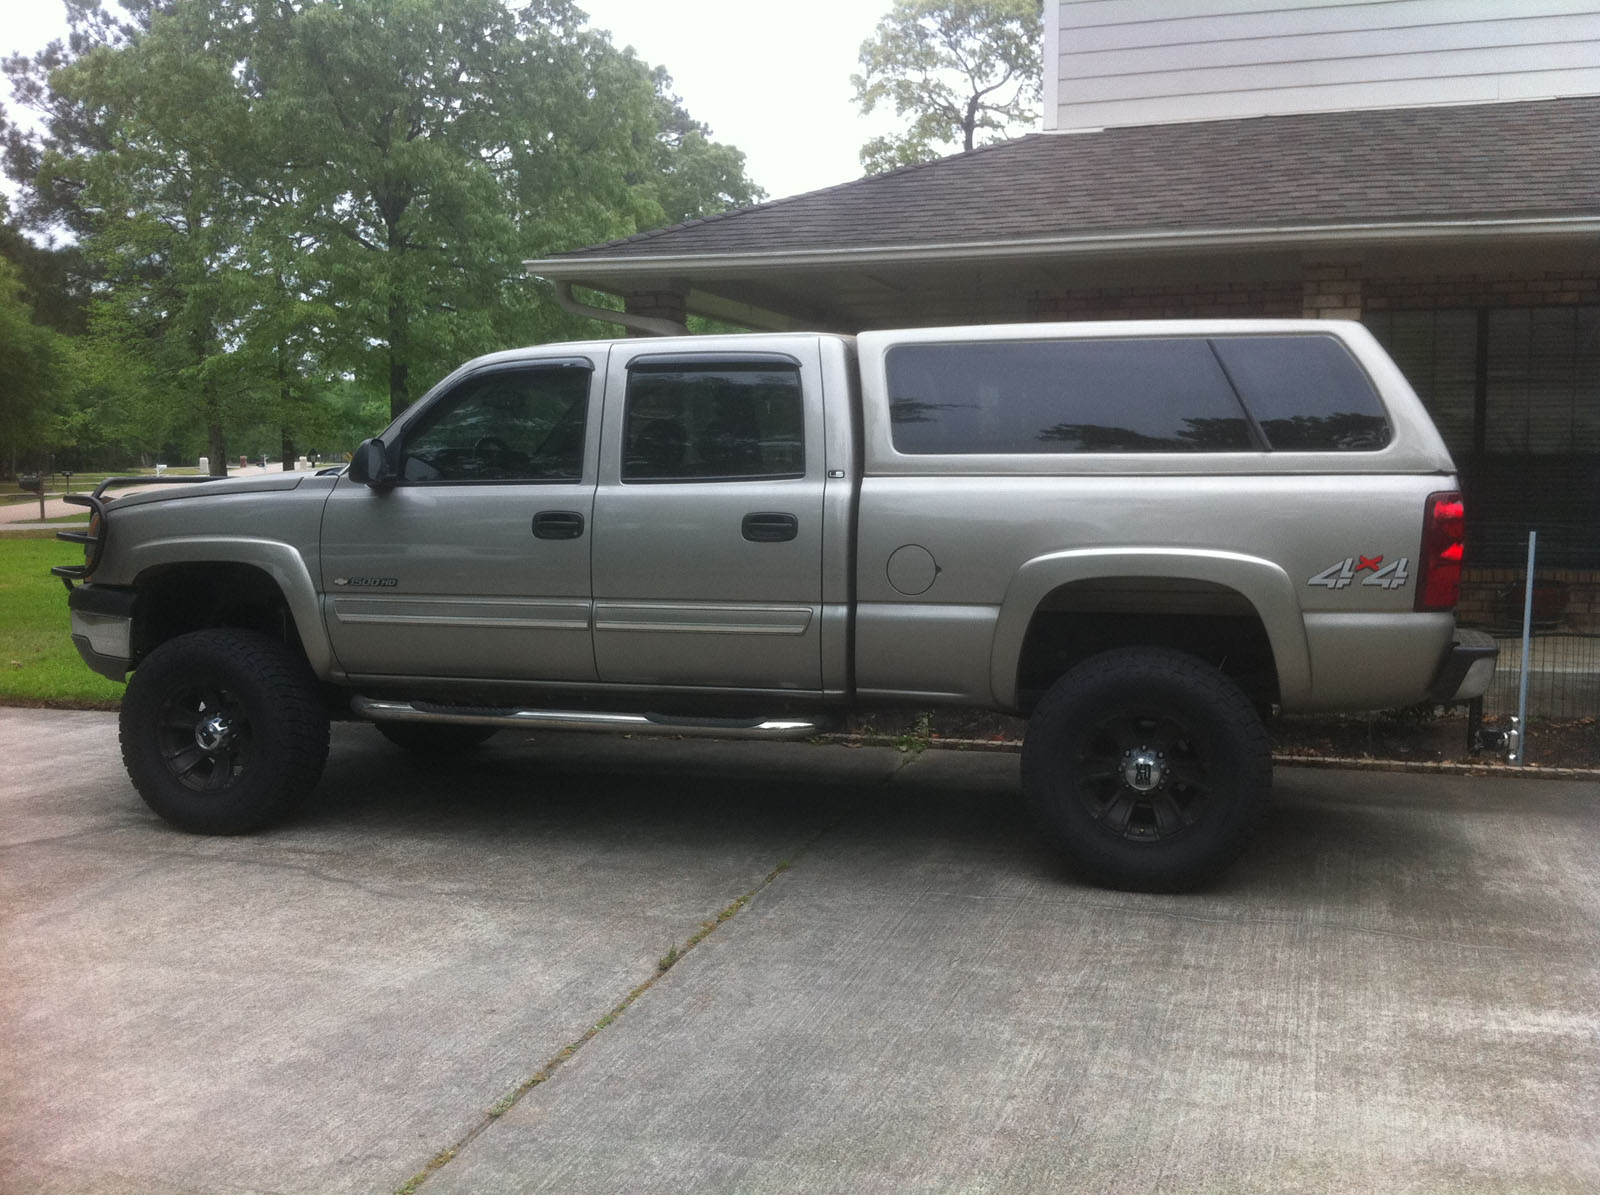 All Chevy chevy 1500 hd : 2003 Chevrolet Silverado 1500HD For Sale   The Woodlands Texas